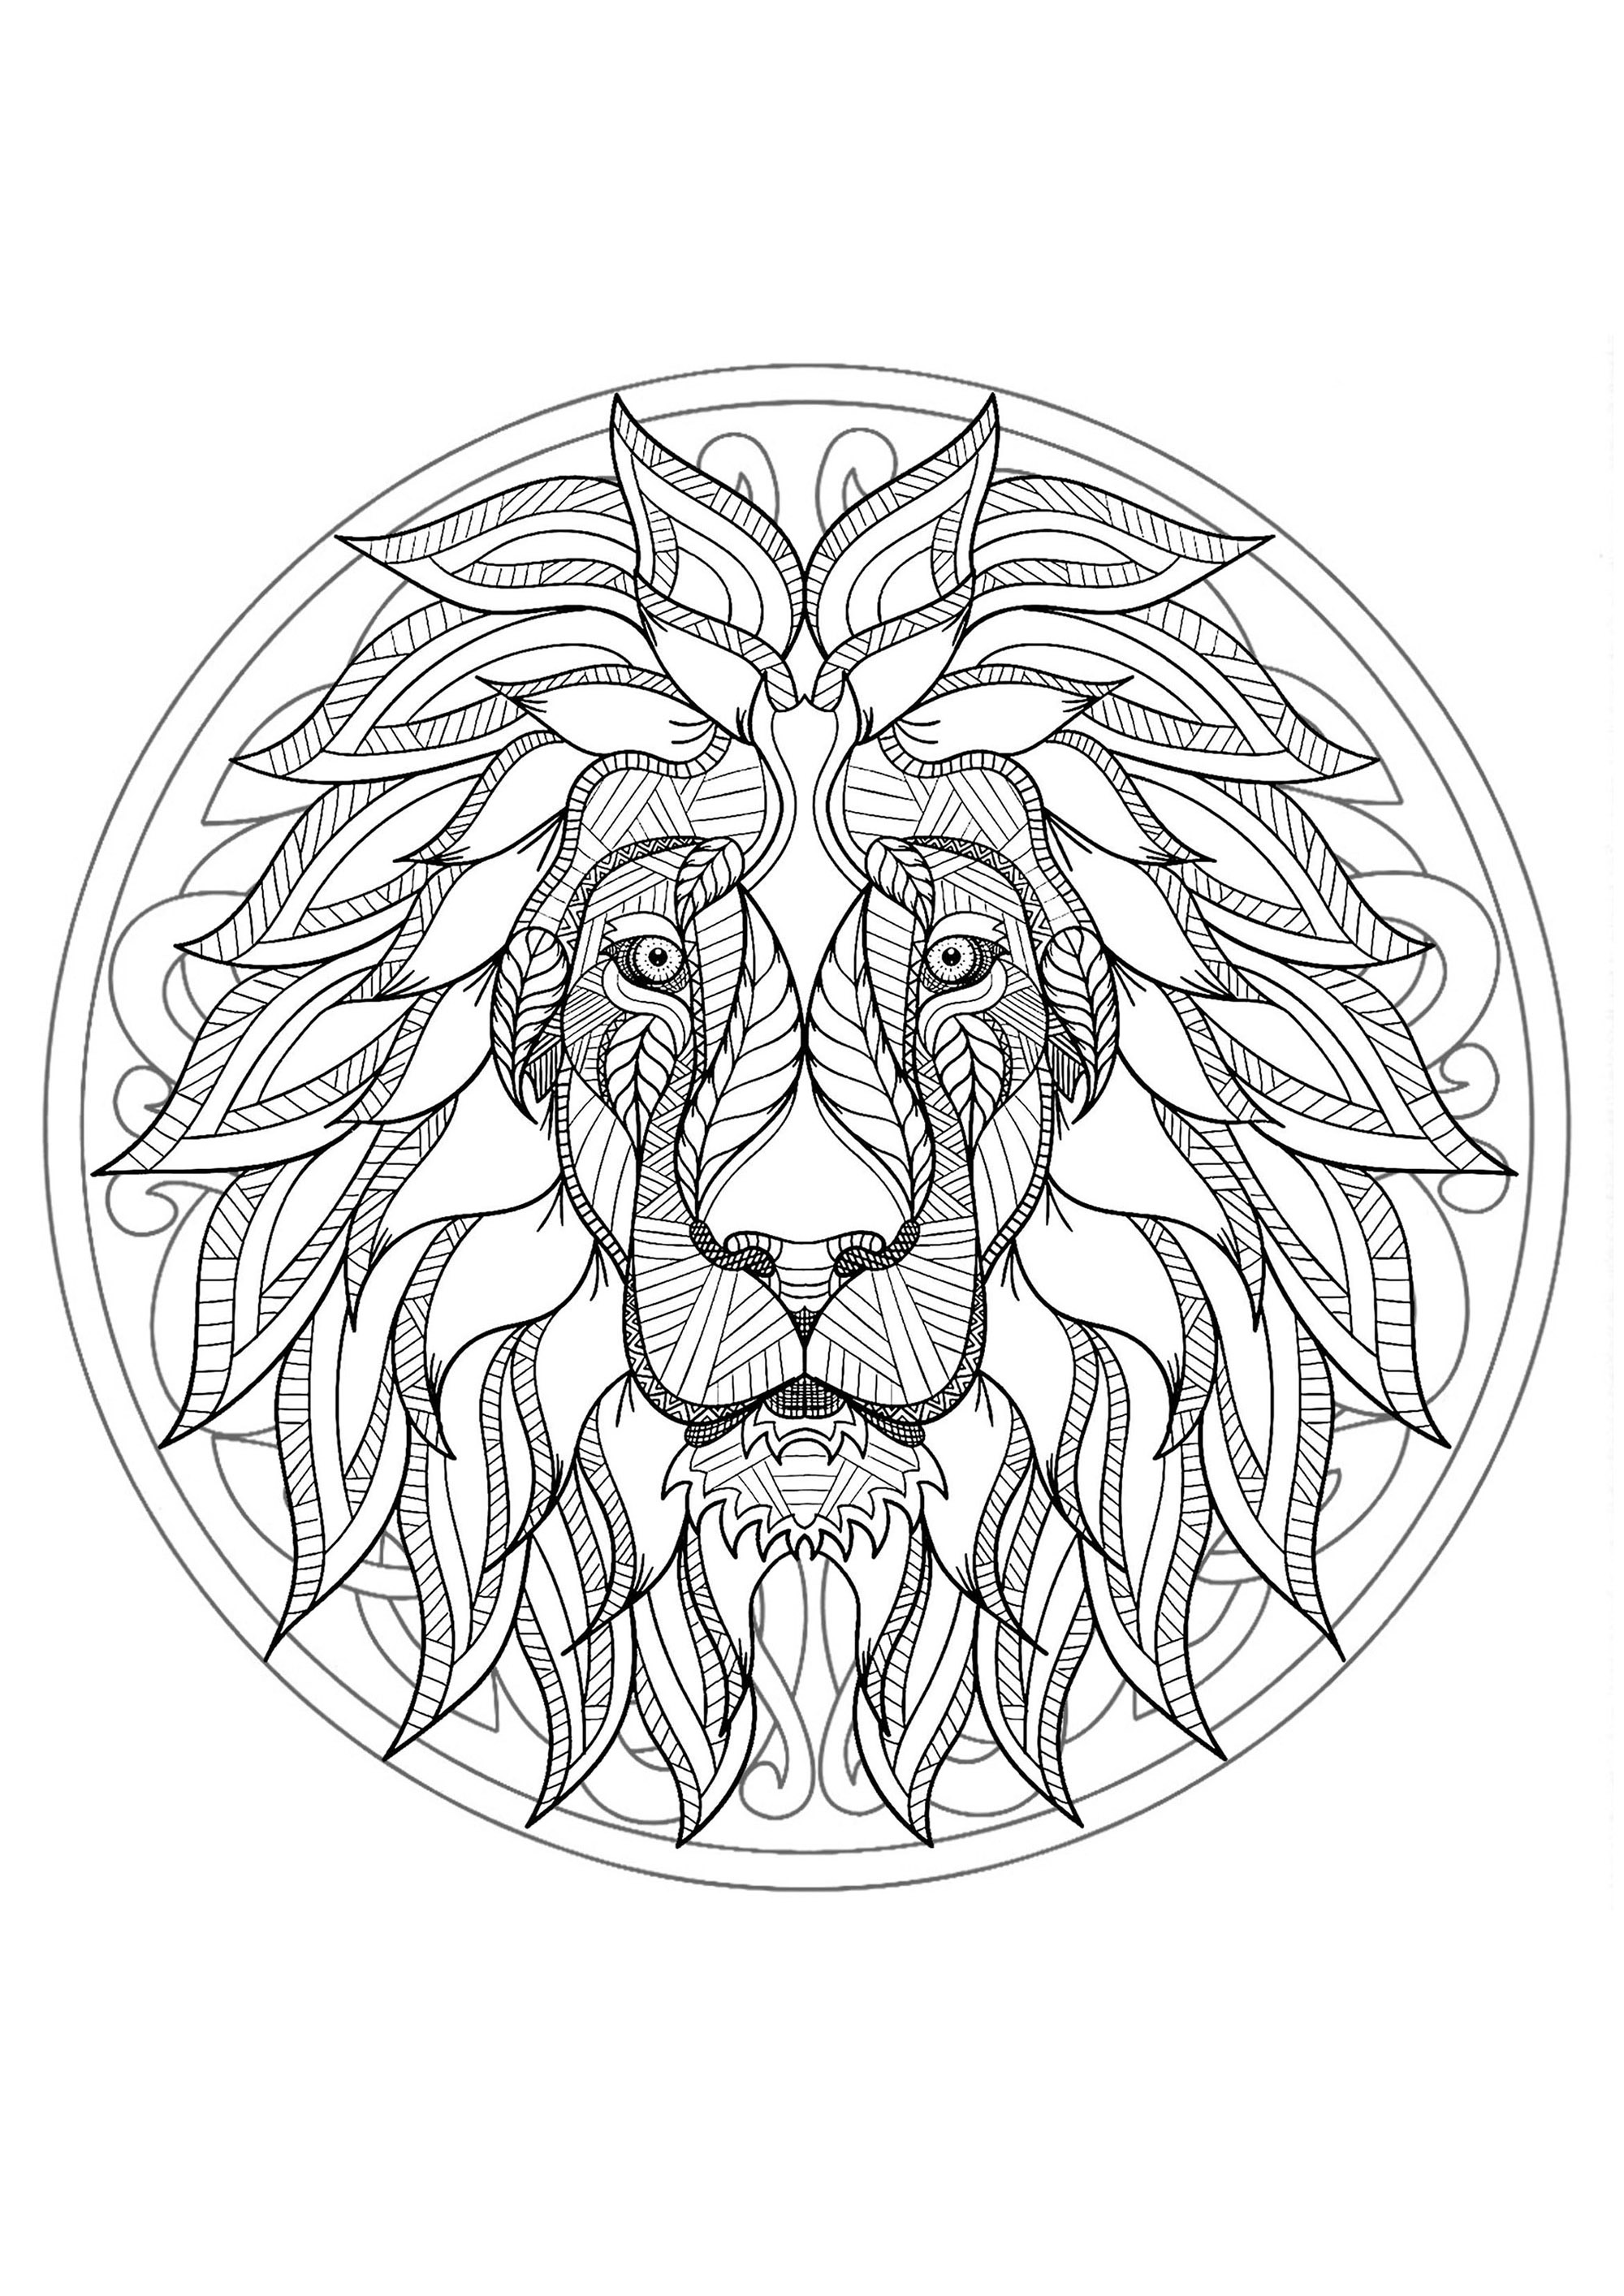 Mandalas Kids Coloring Pages